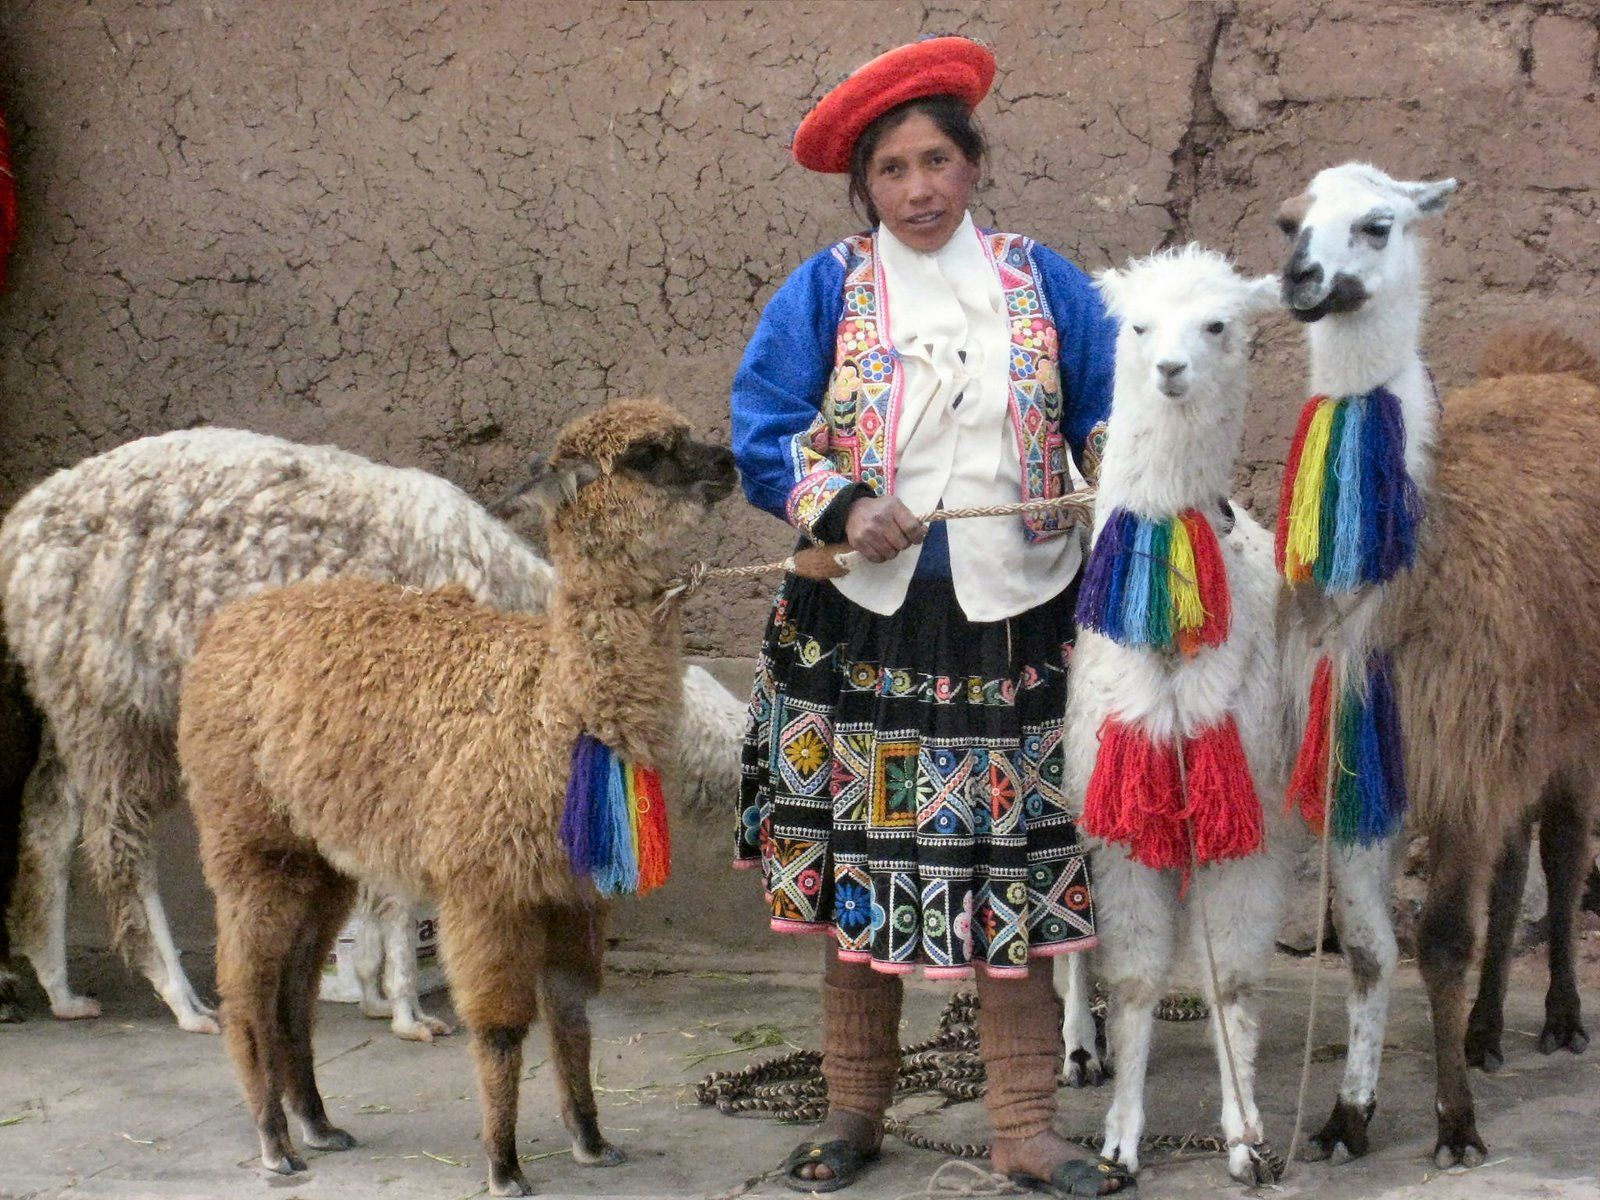 Llamas In Peru Love The Yarn Decorations With Images Inca